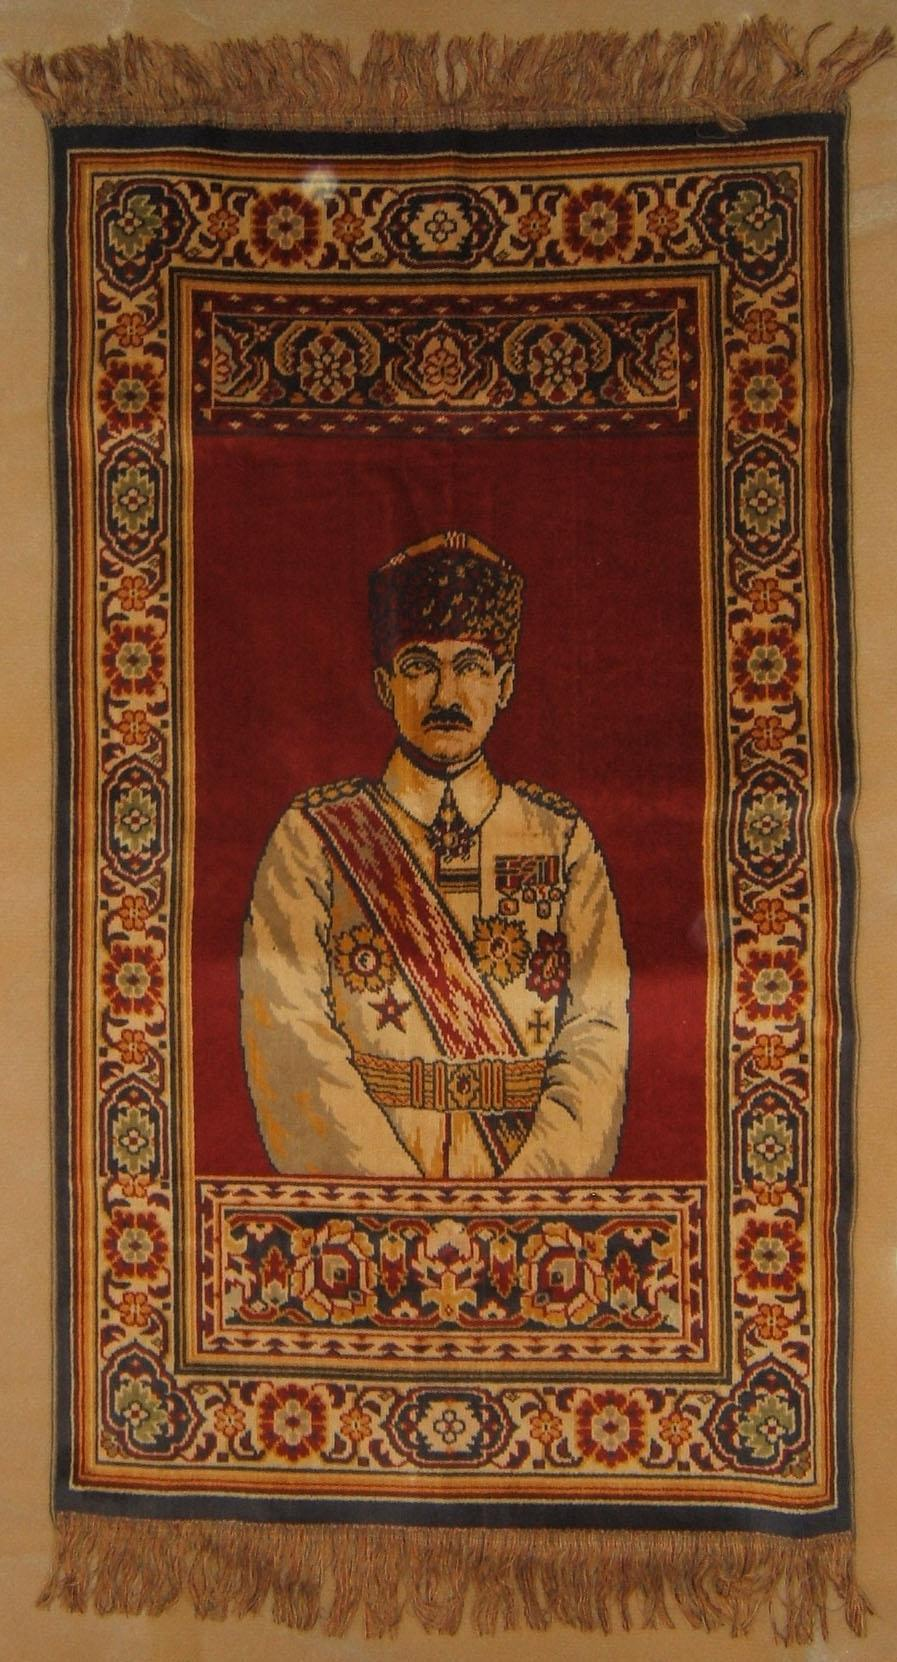 Mustafa Kemal [Atat?rk] Jewish carpet by Alliance Israelite Universelle school, 1918